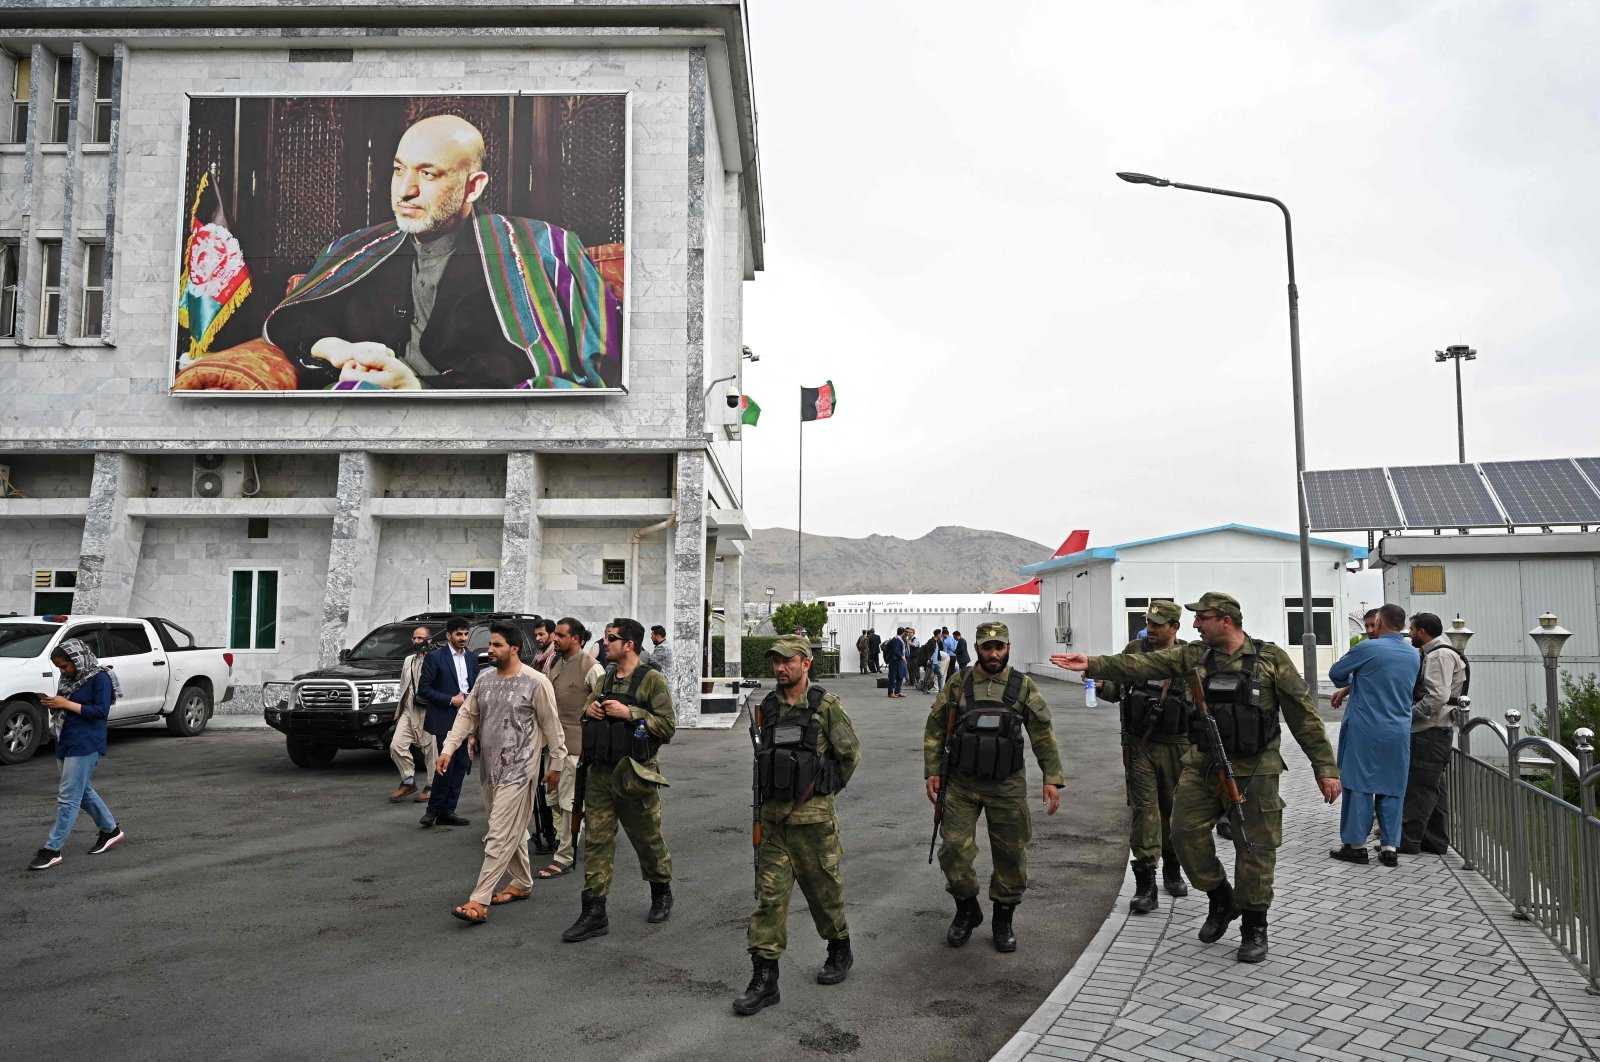 Security personnel walk past a poster of former Afghan President Hamid Karzai at the Hamid Karzai International Airport in Kabul on July 16, 2021. (AFP Photo)